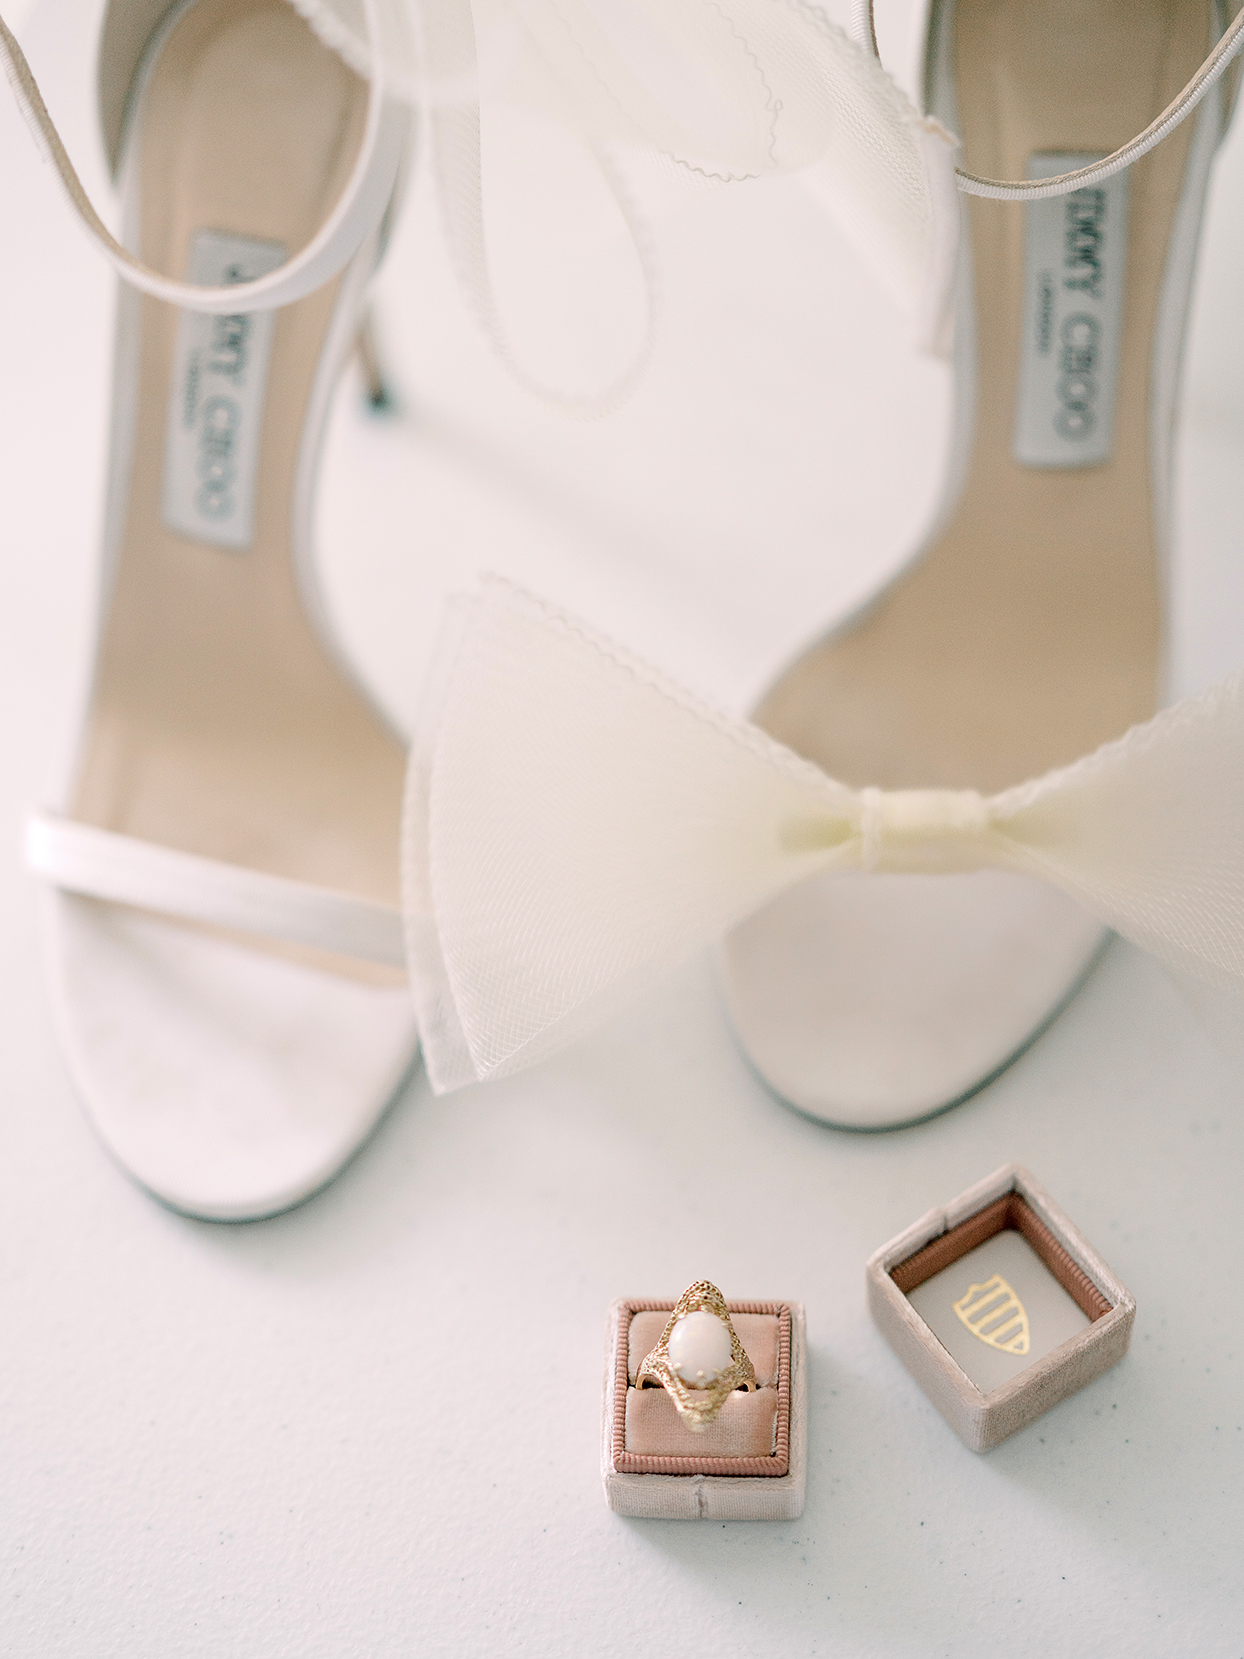 marina evan wedding accessories ring shoes